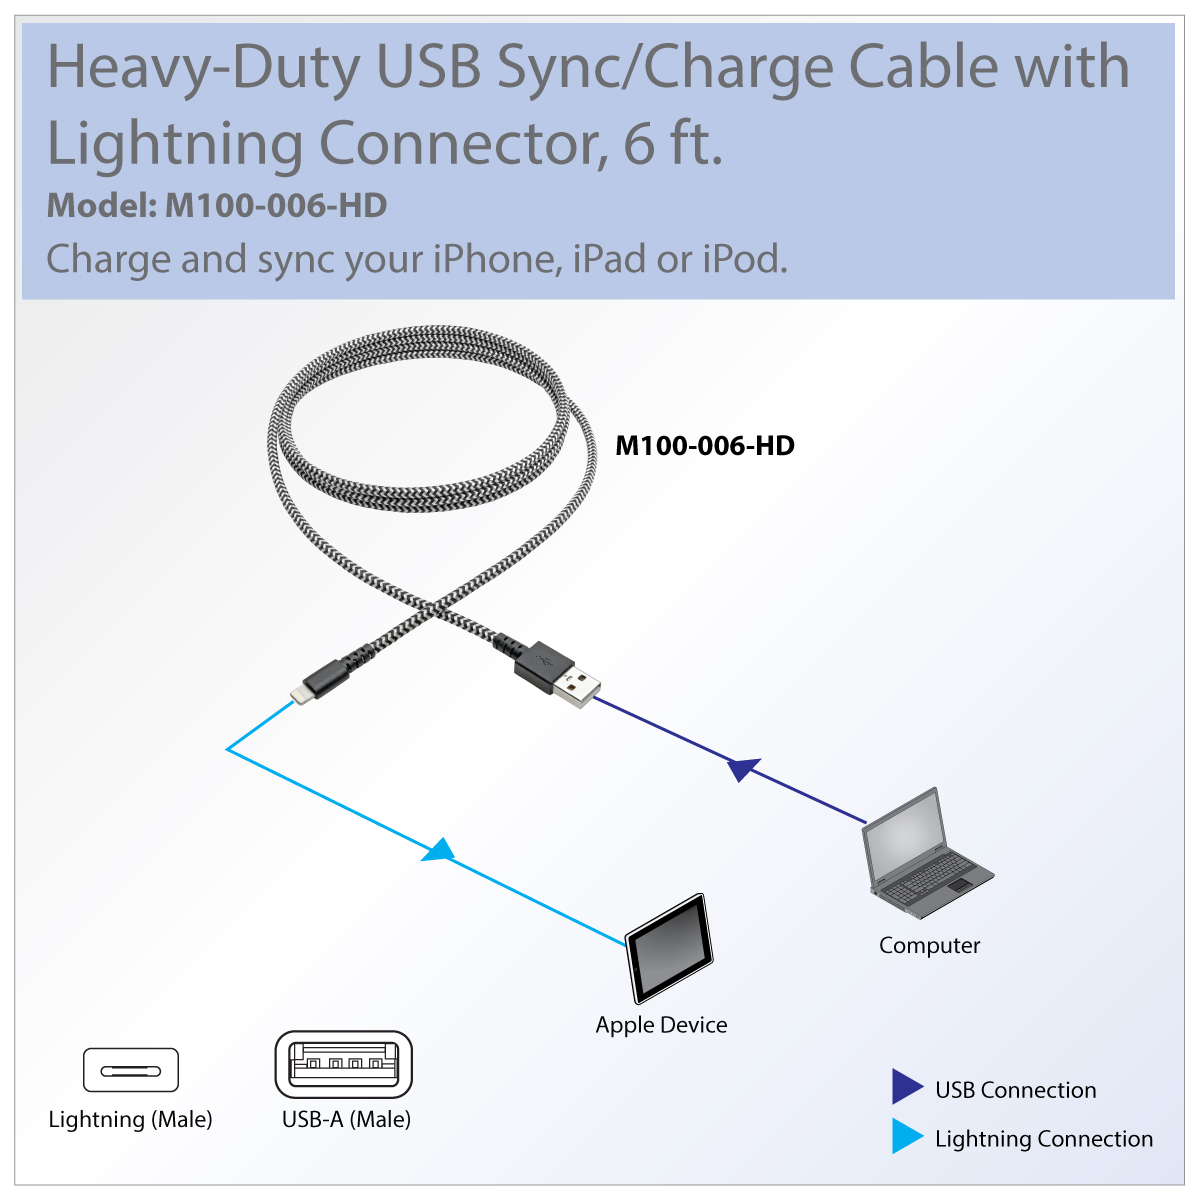 hight resolution of bulletproof aramid reinforced cable charges and syncs your latest generation iphone ipad